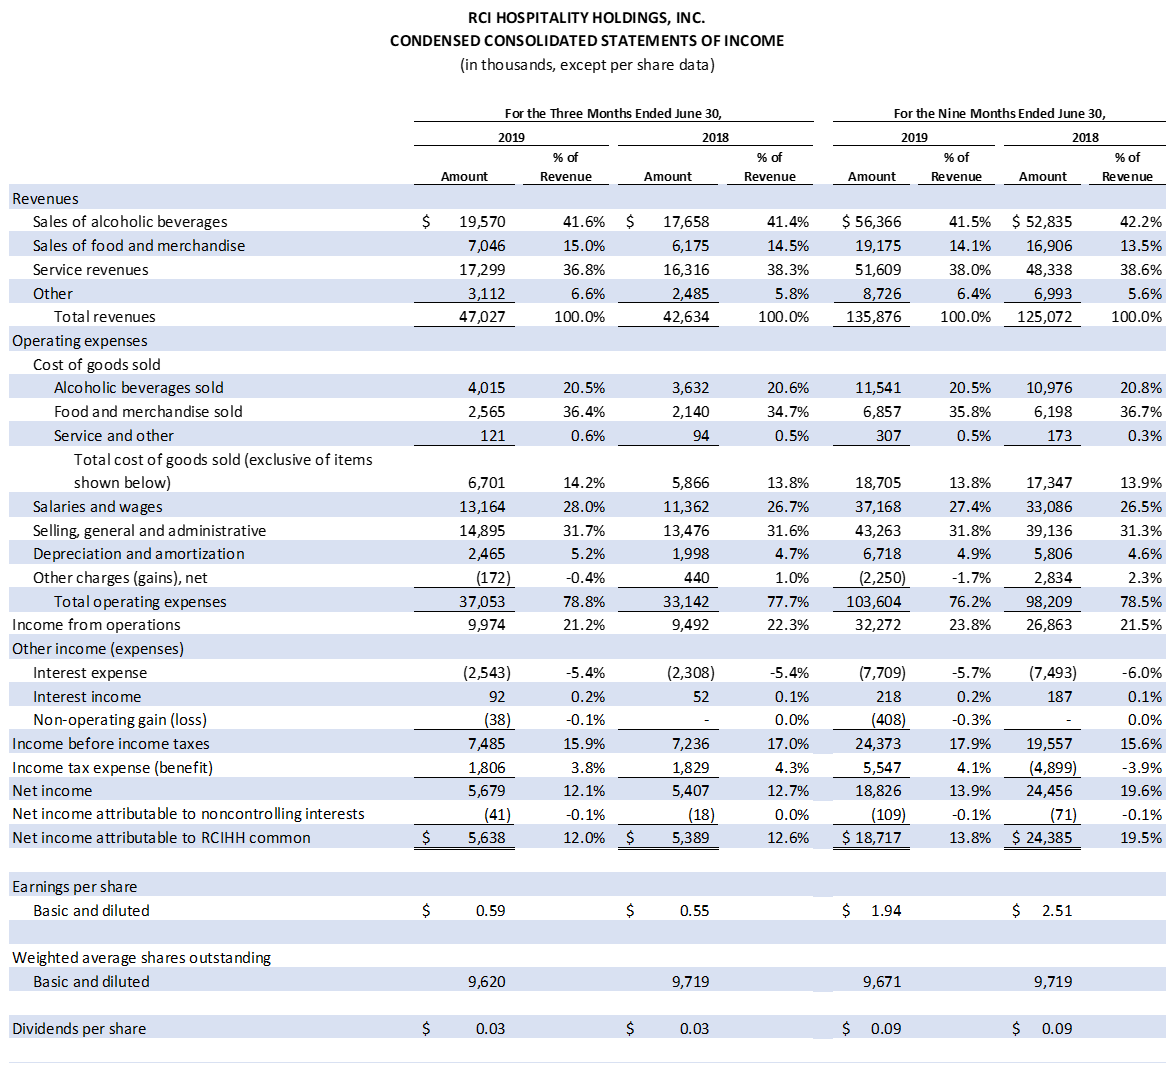 Table: Condensed Consolidated Statements of Income